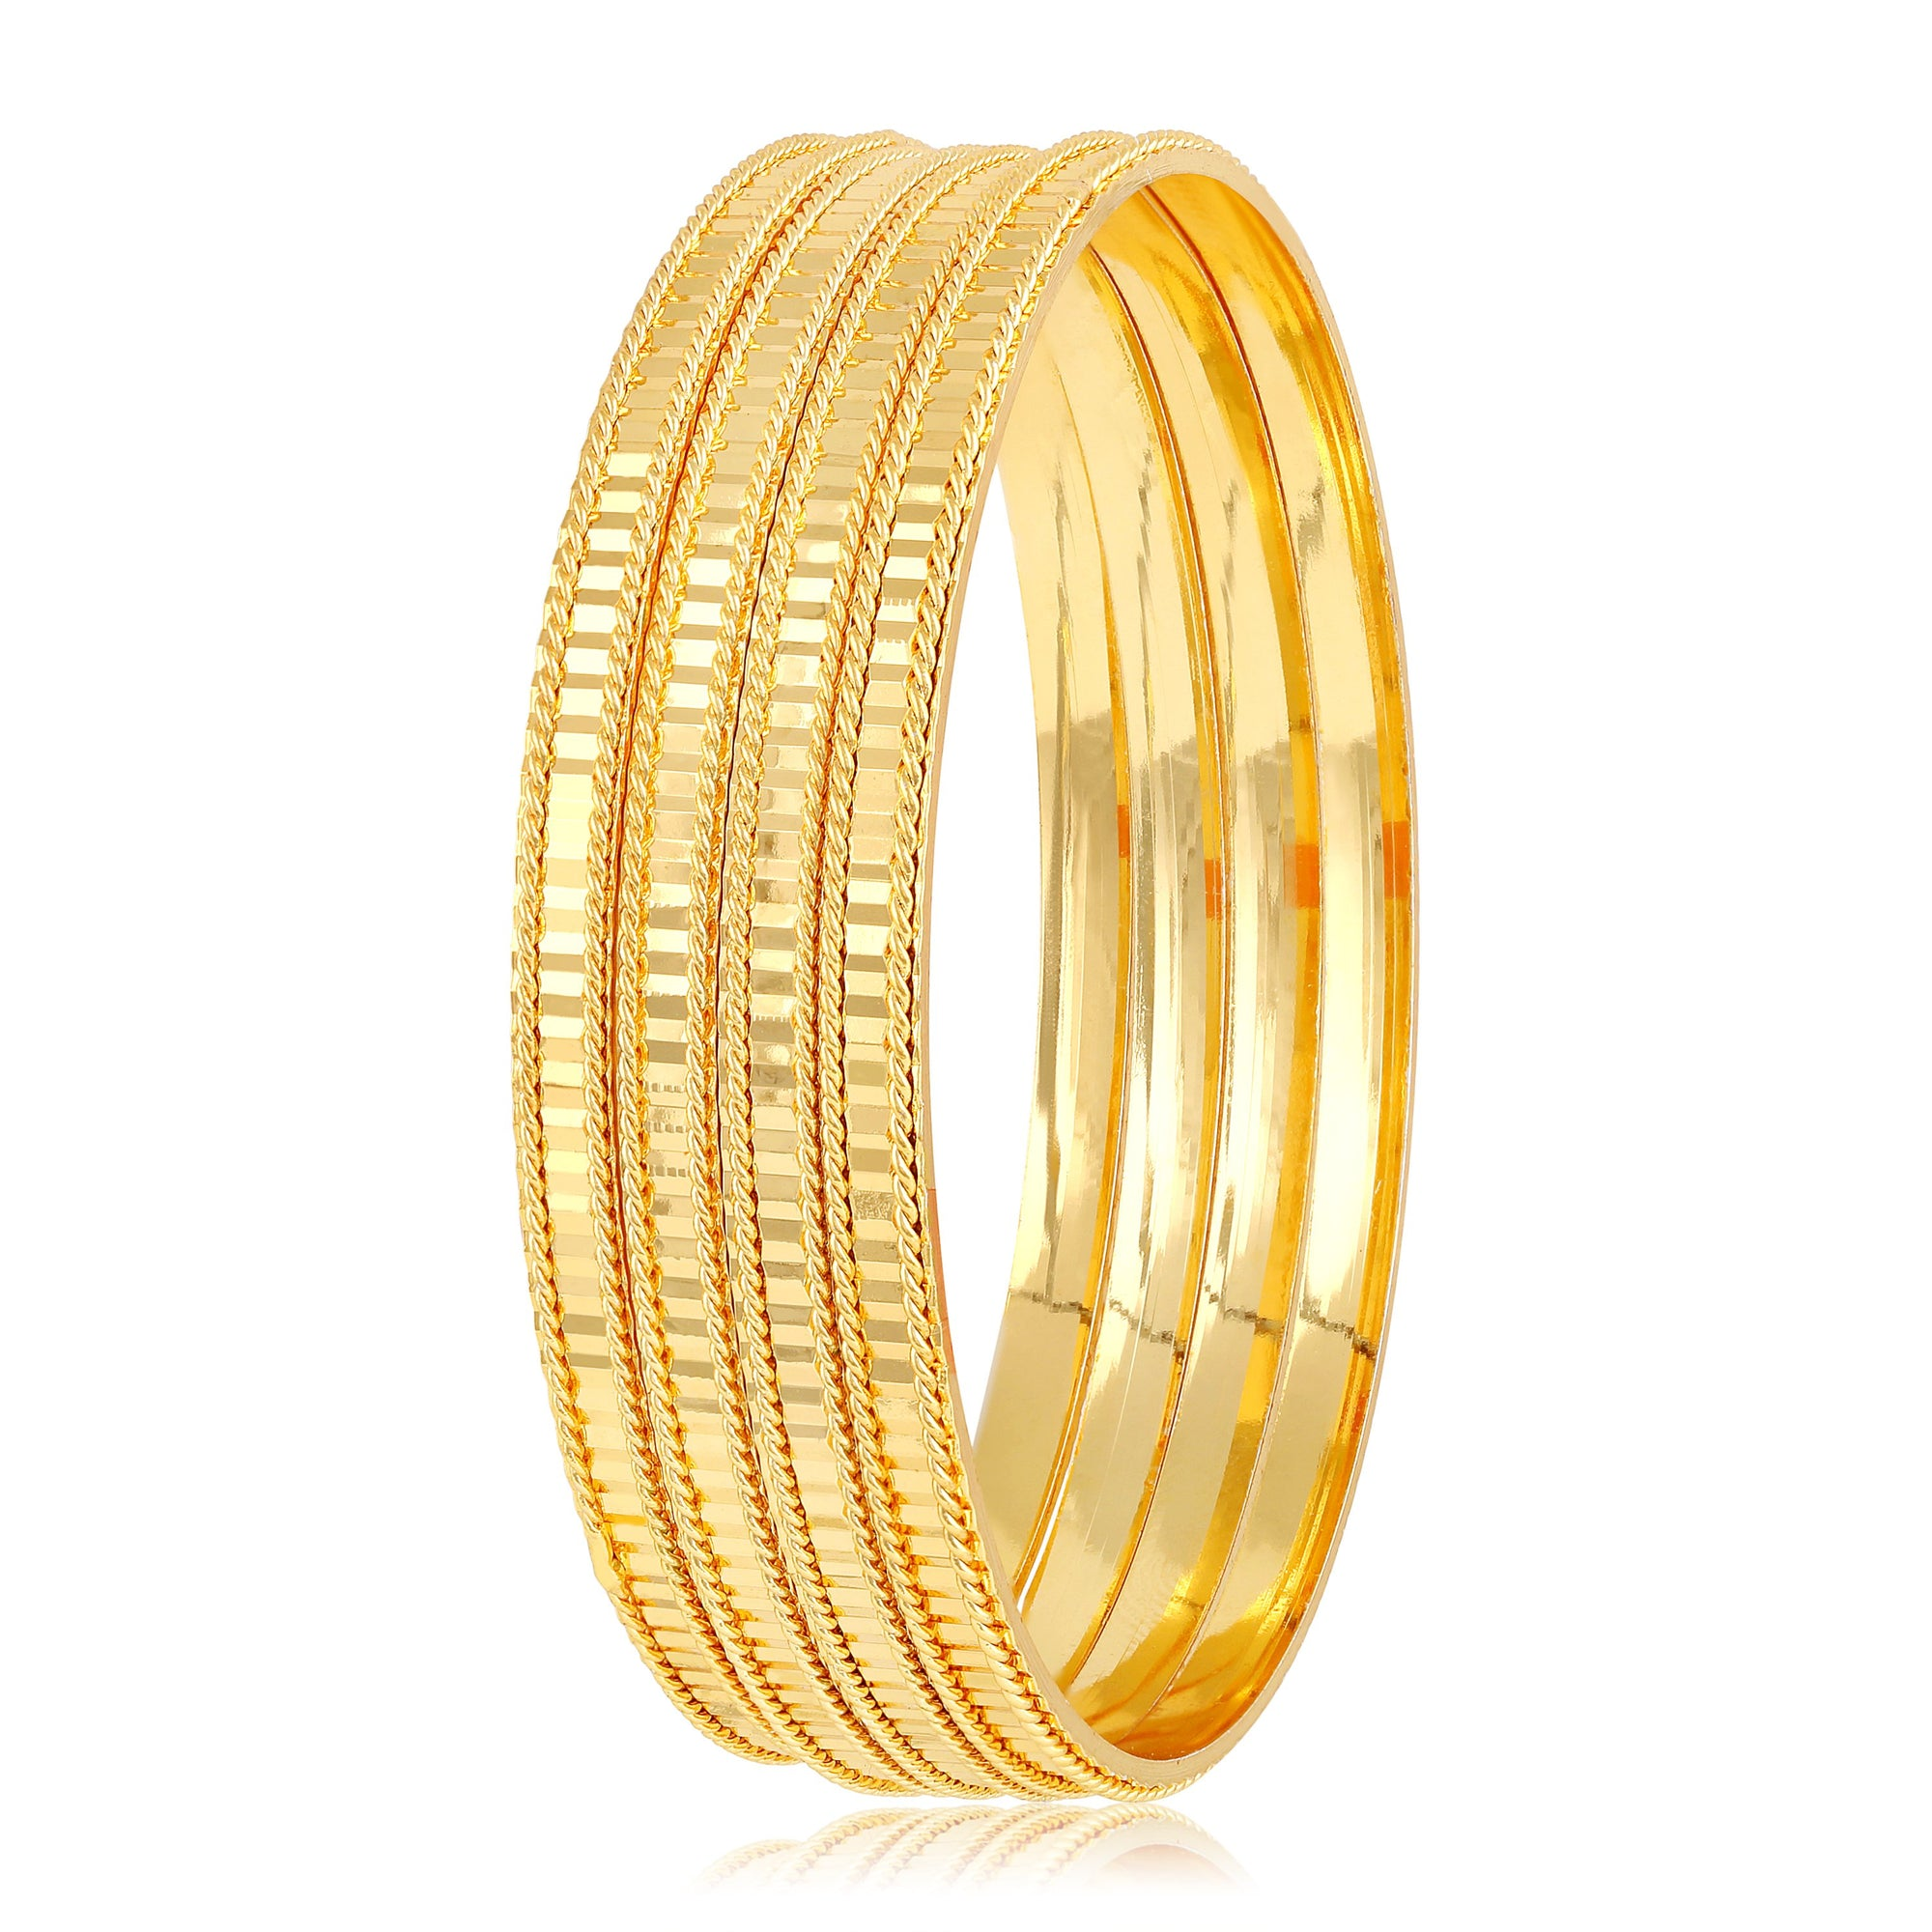 Asmitta Jewellery  Gold Brass Bangle Set  -BG289